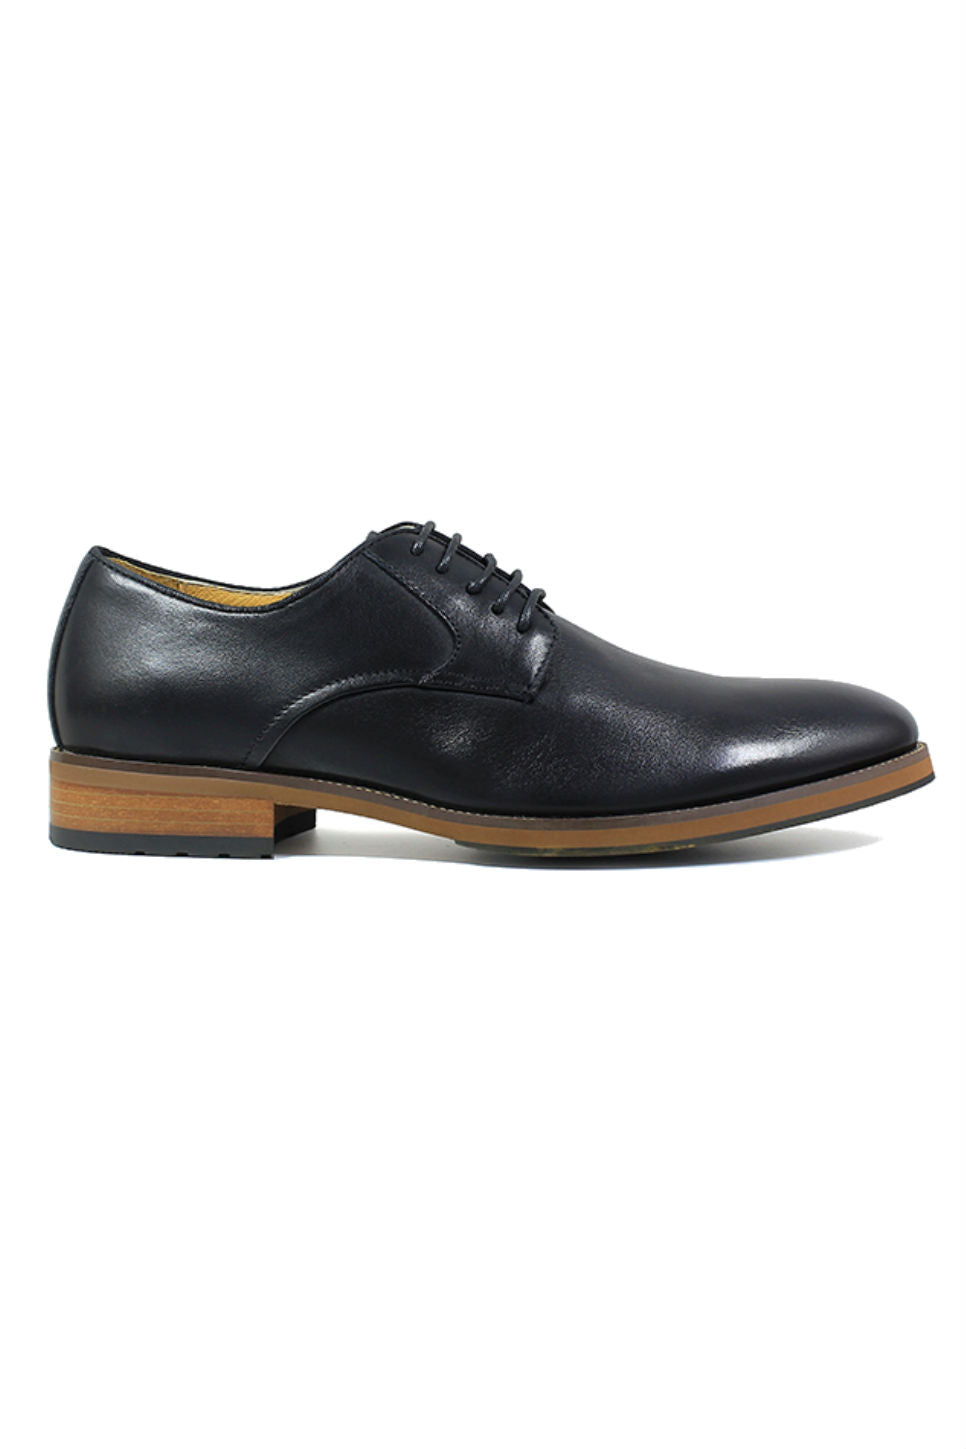 Florsheim - Blaze Plain Toe Oxford - Black - Side